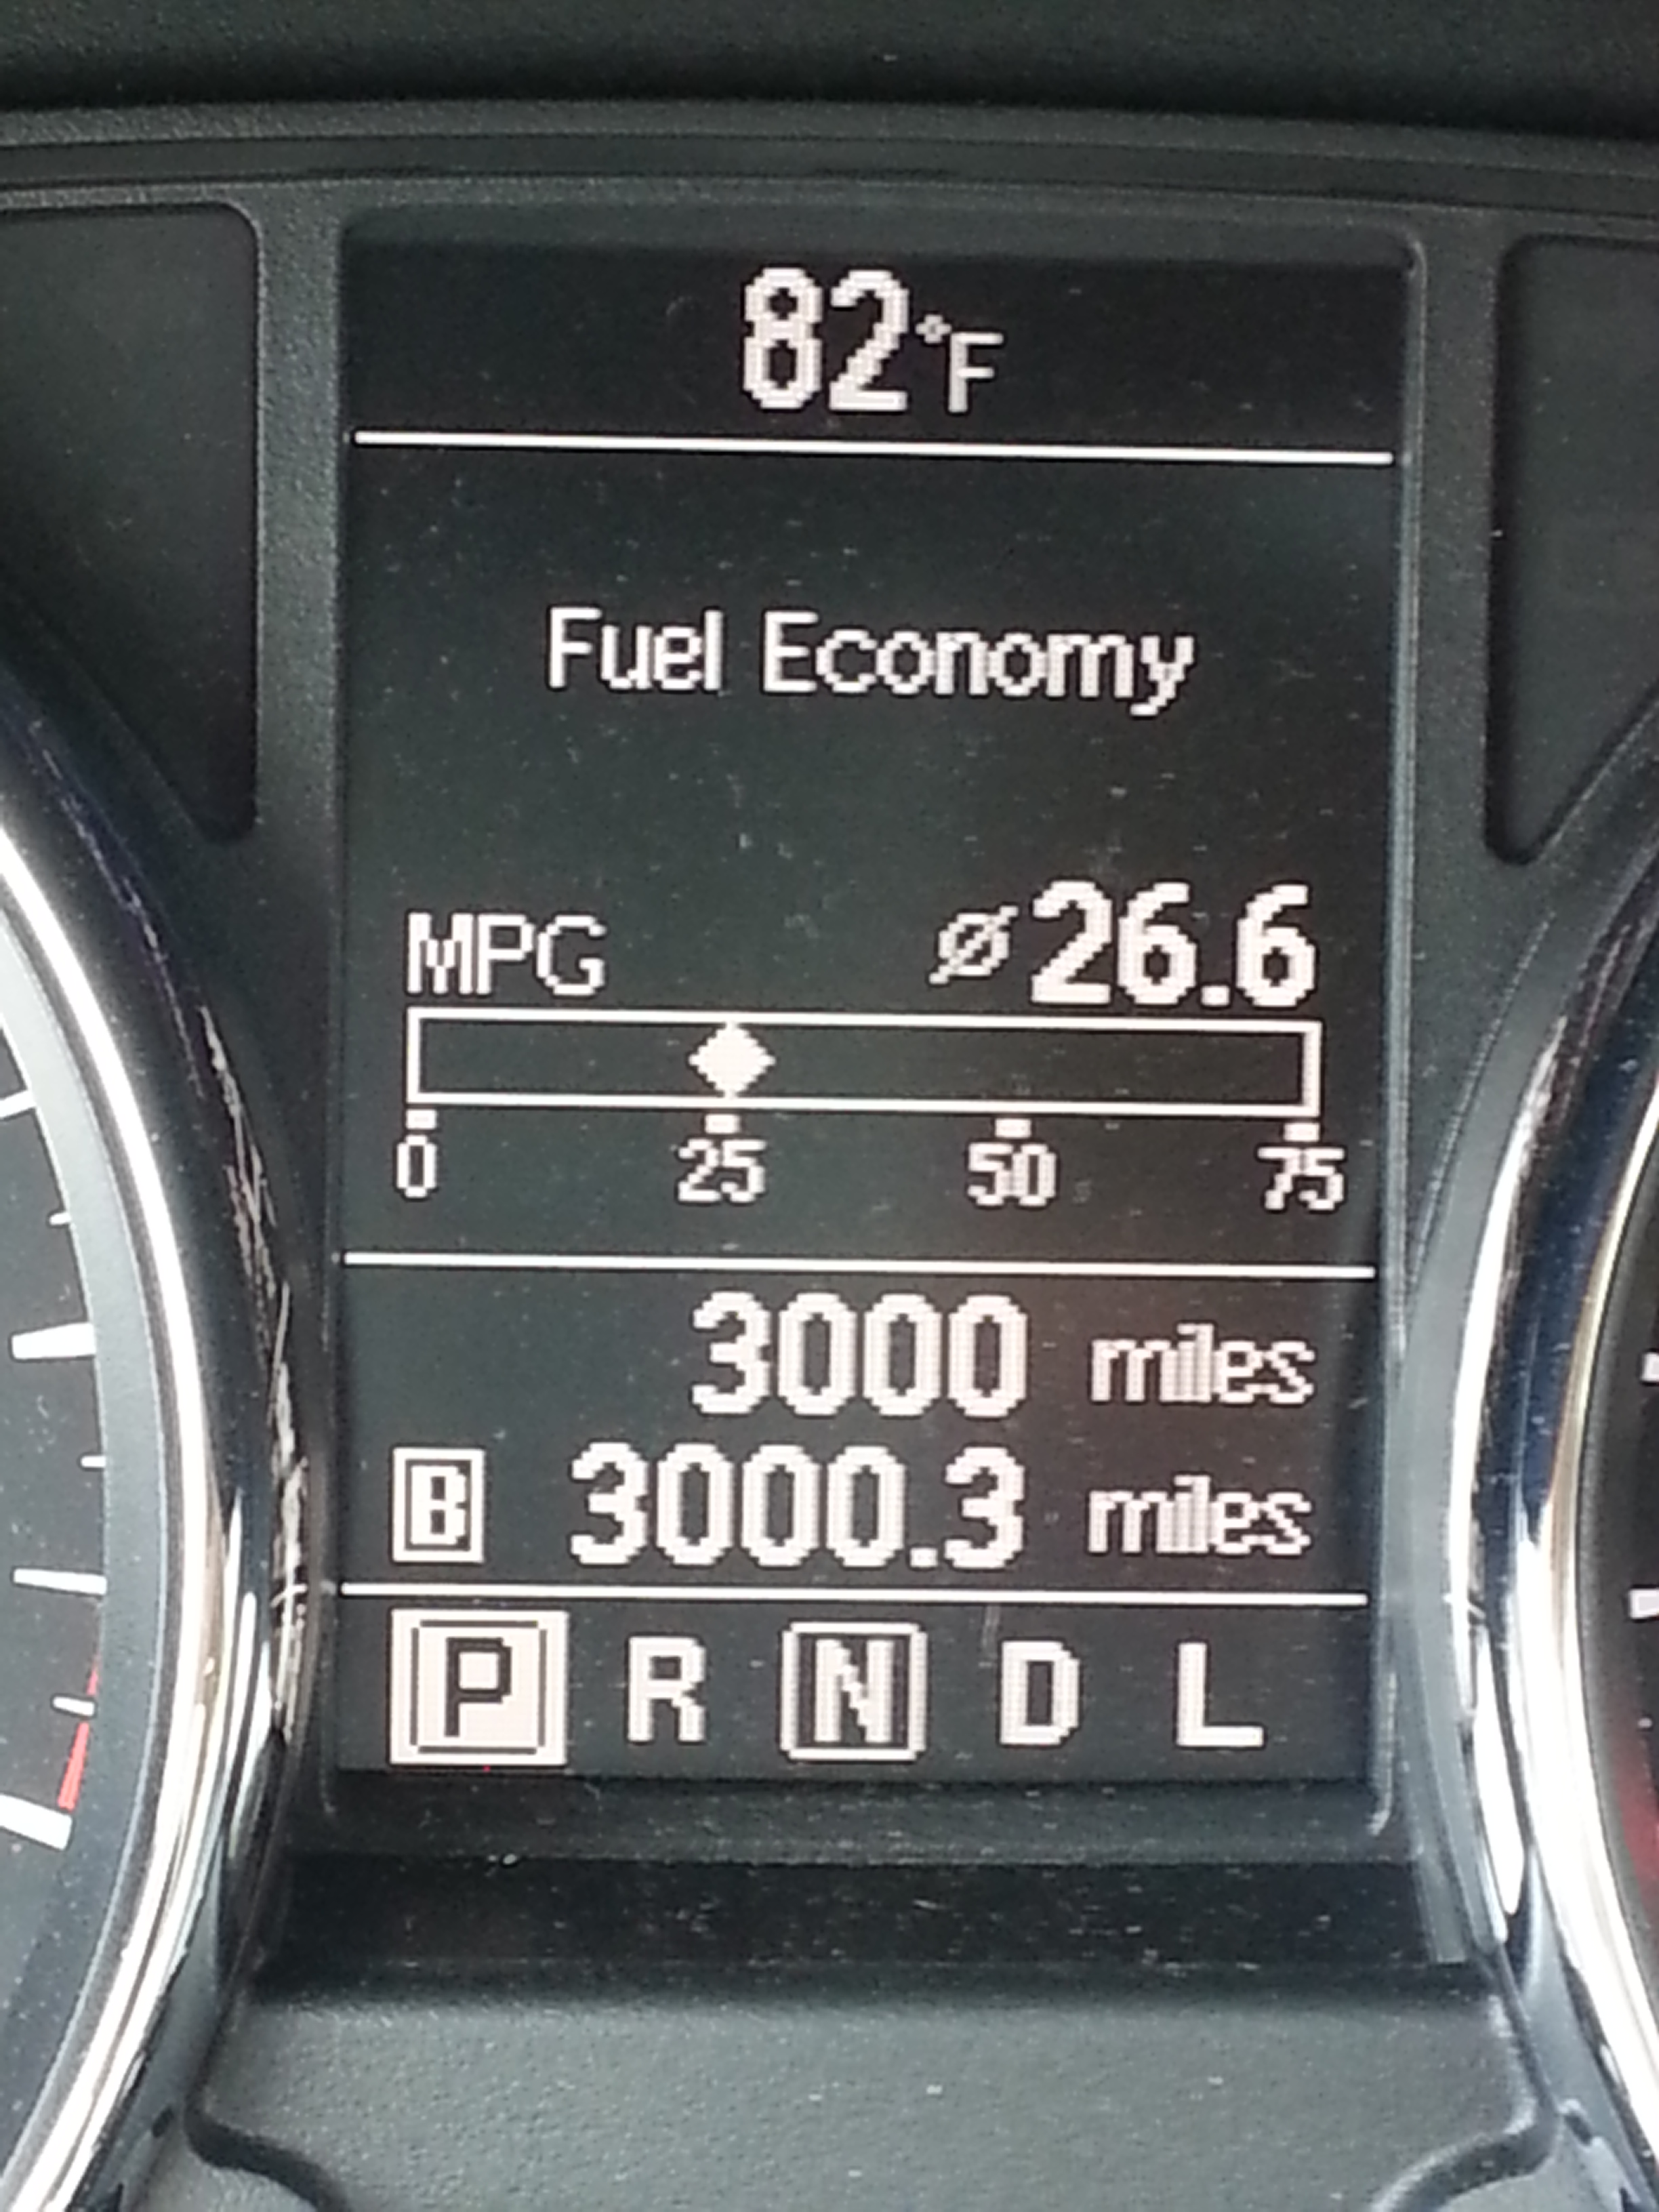 2013 Nissan Rogue Gas Mileage 26.6